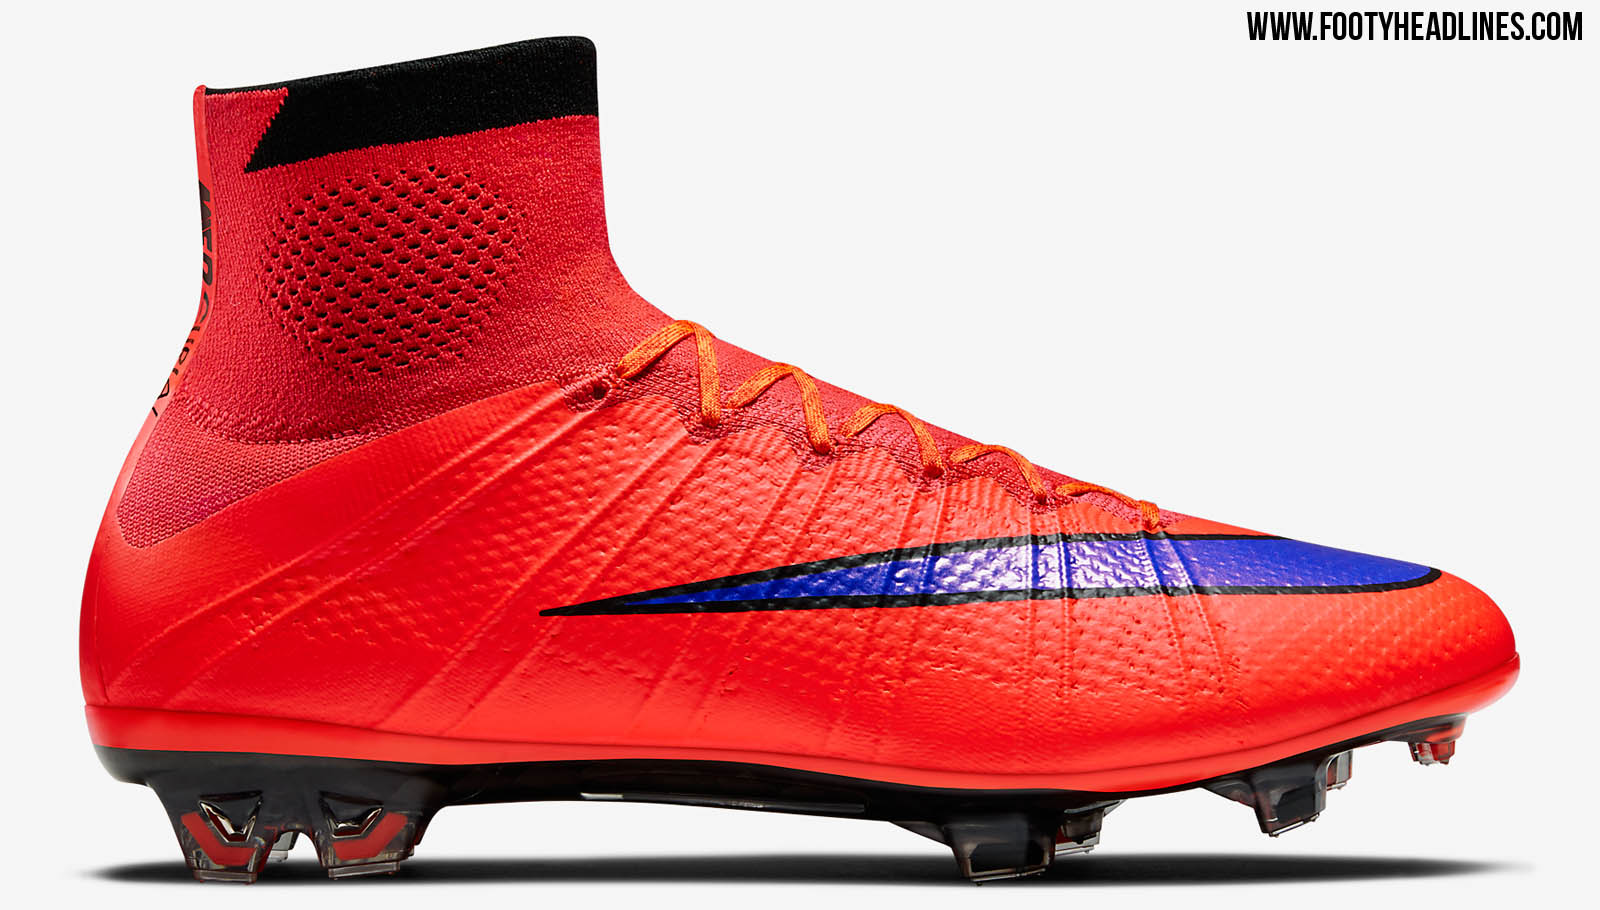 new style 6fce8 60b2c ... Nike Mercurial Superfly Red Purple Black Nike Mercurial Superfly FG ...